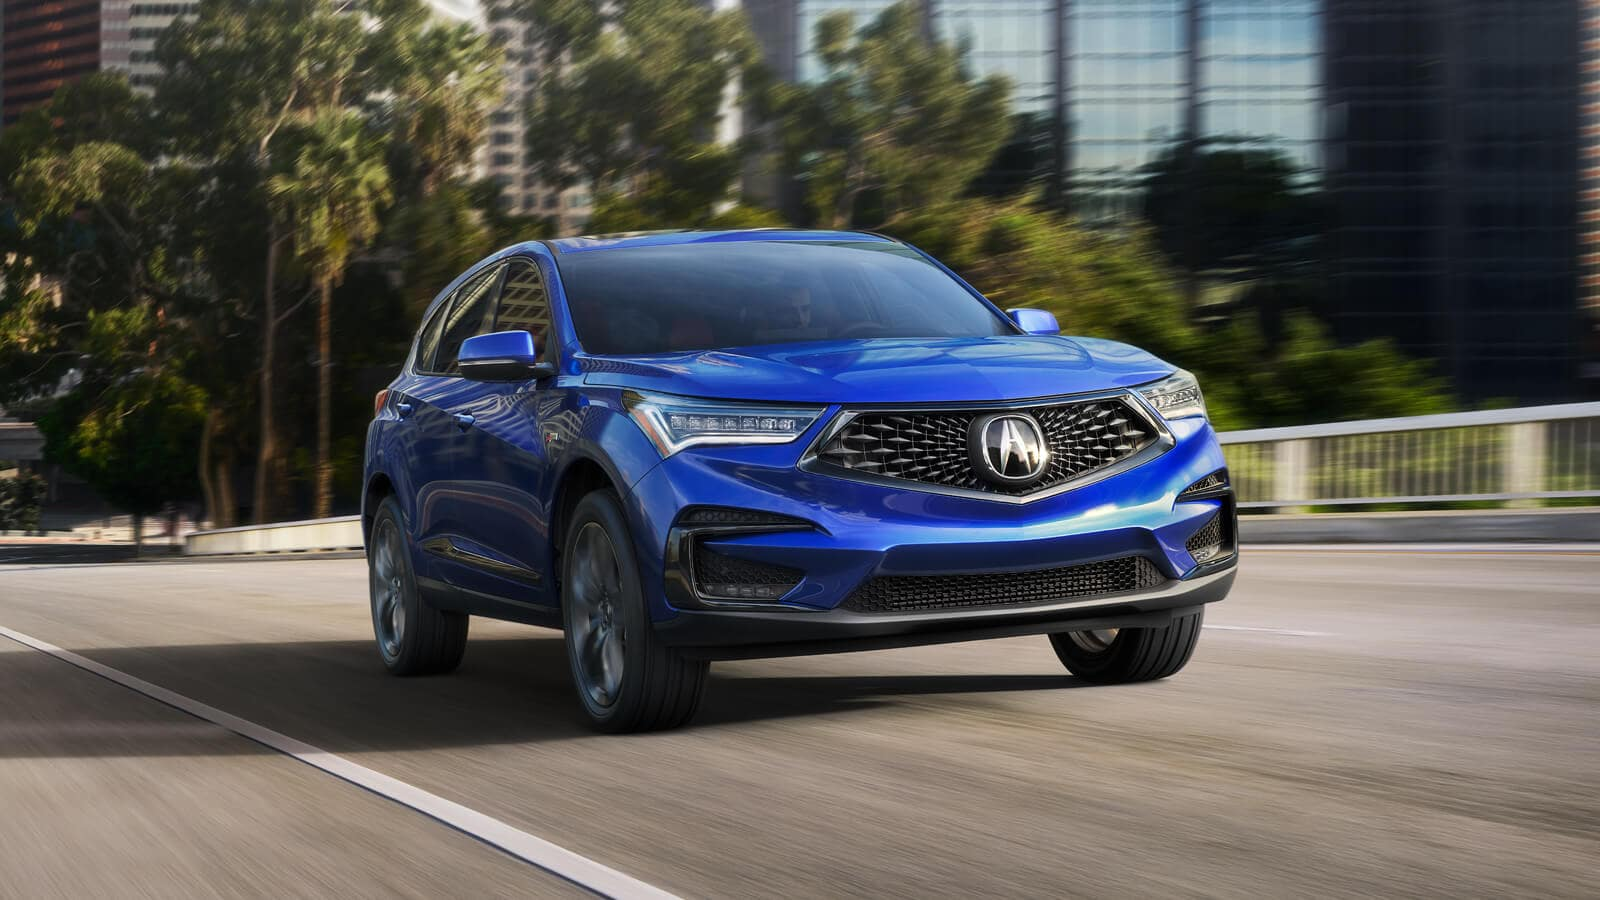 2020 Acura RDX A-Spec Exterior Front Angle Passenger Side